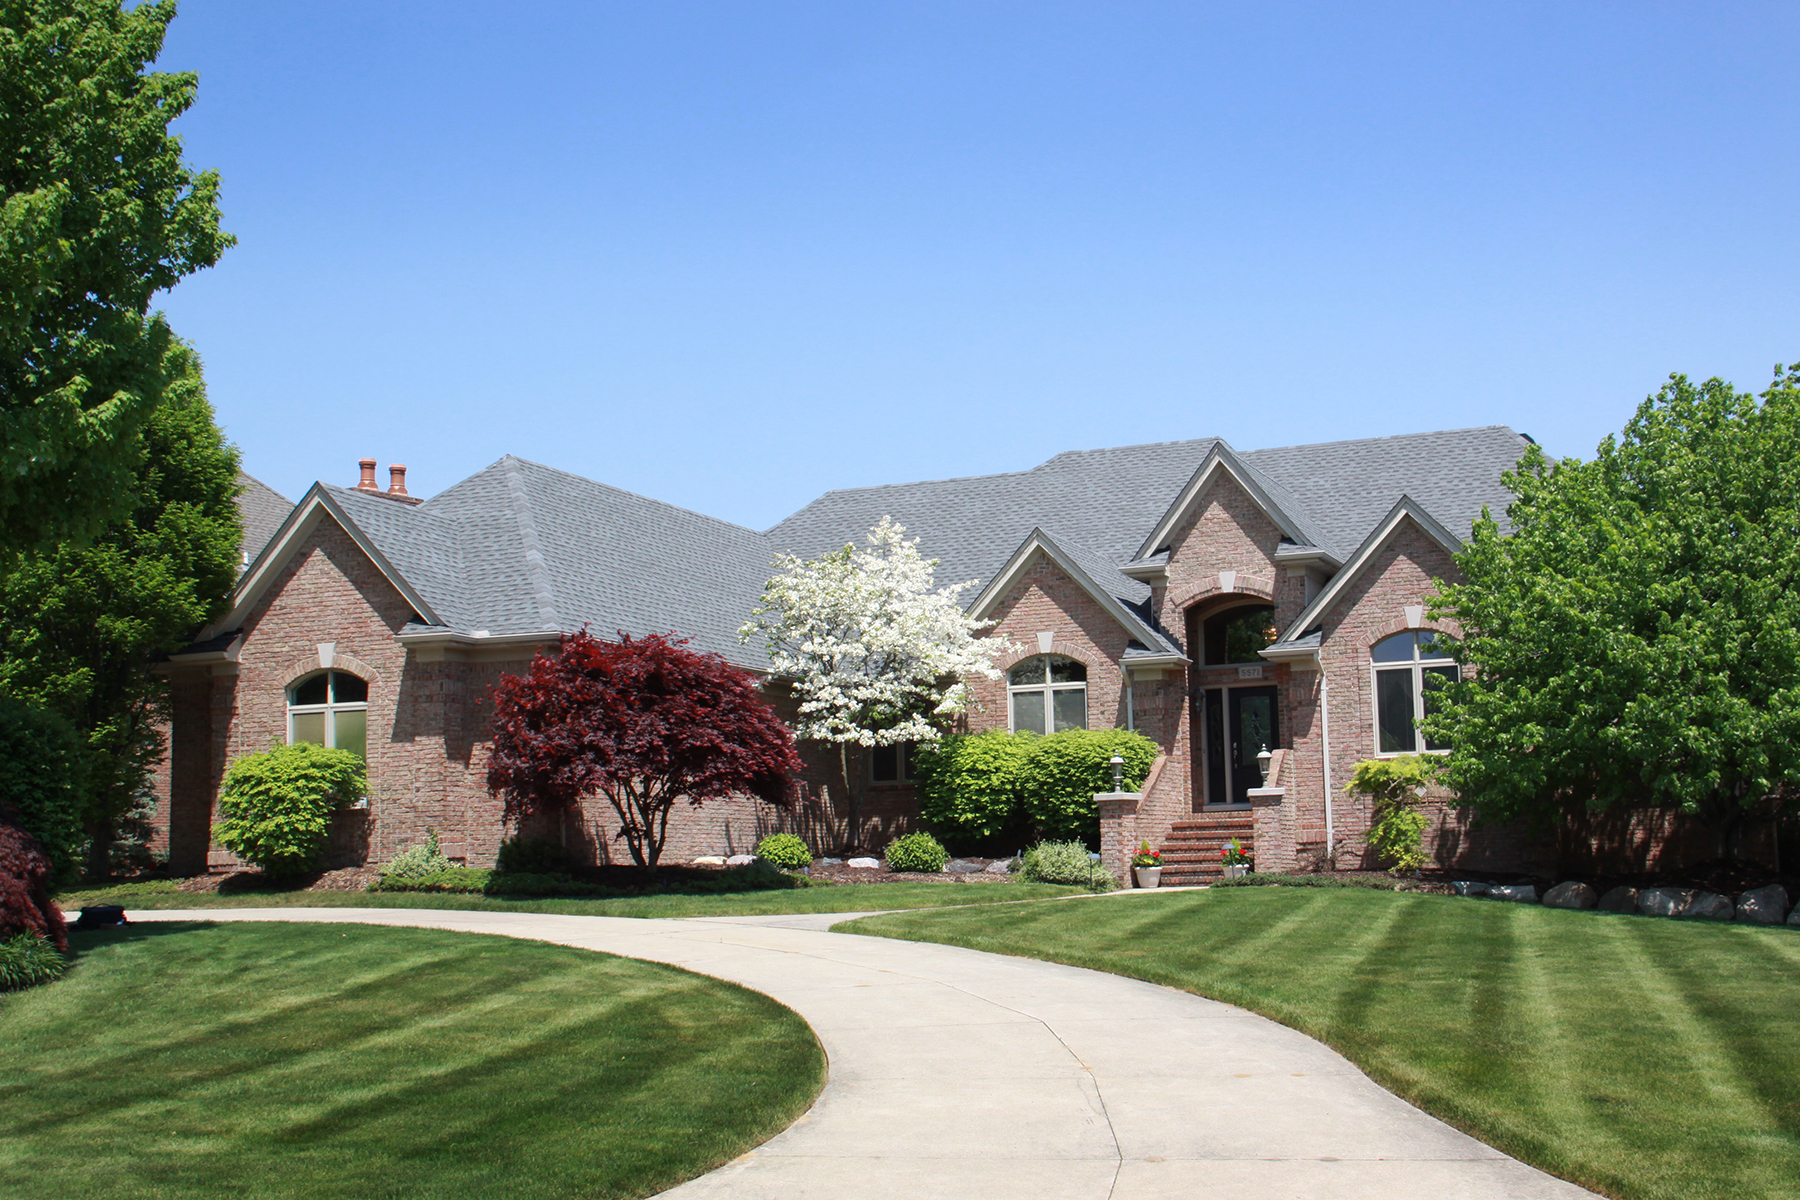 Villa per Vendita alle ore Washington Township 5571 Brookside Lane Washington Township, Michigan, 48094 Stati Uniti